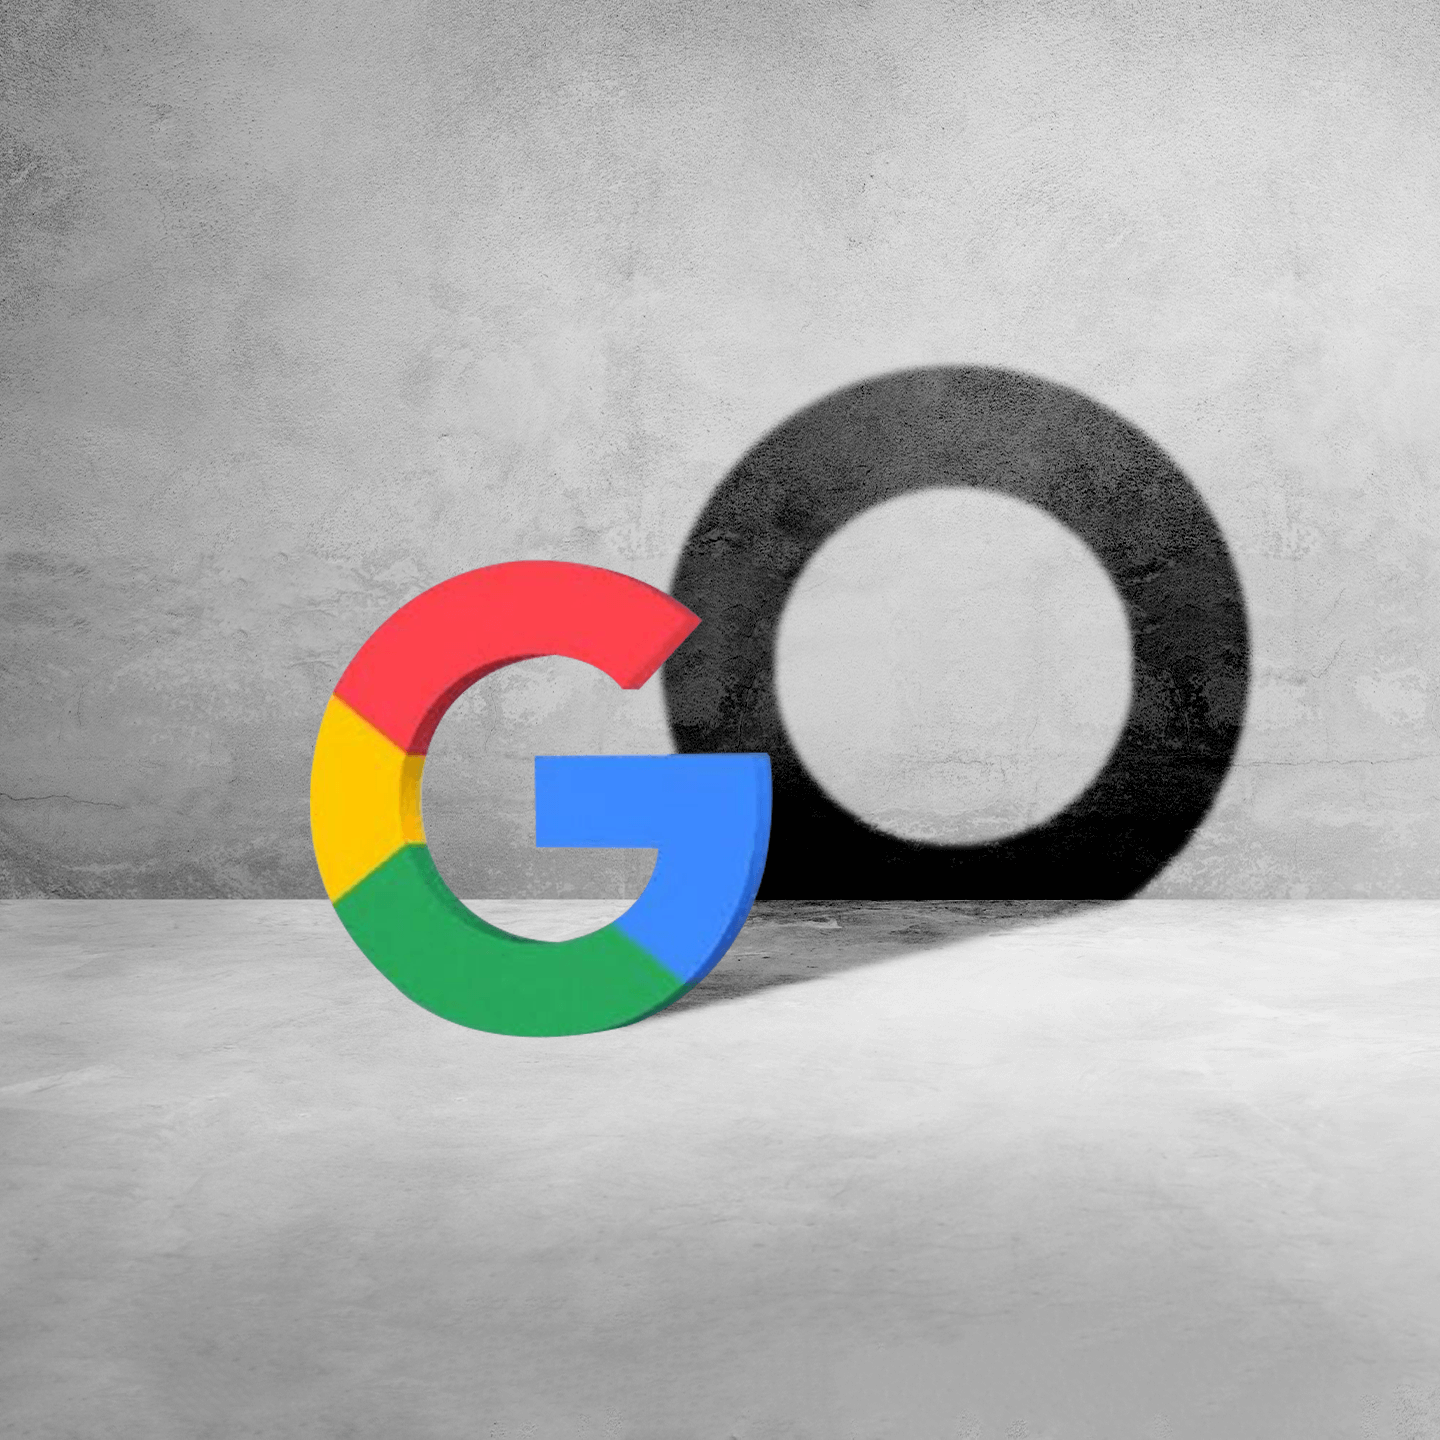 Google – a display of anti-completive behaviour